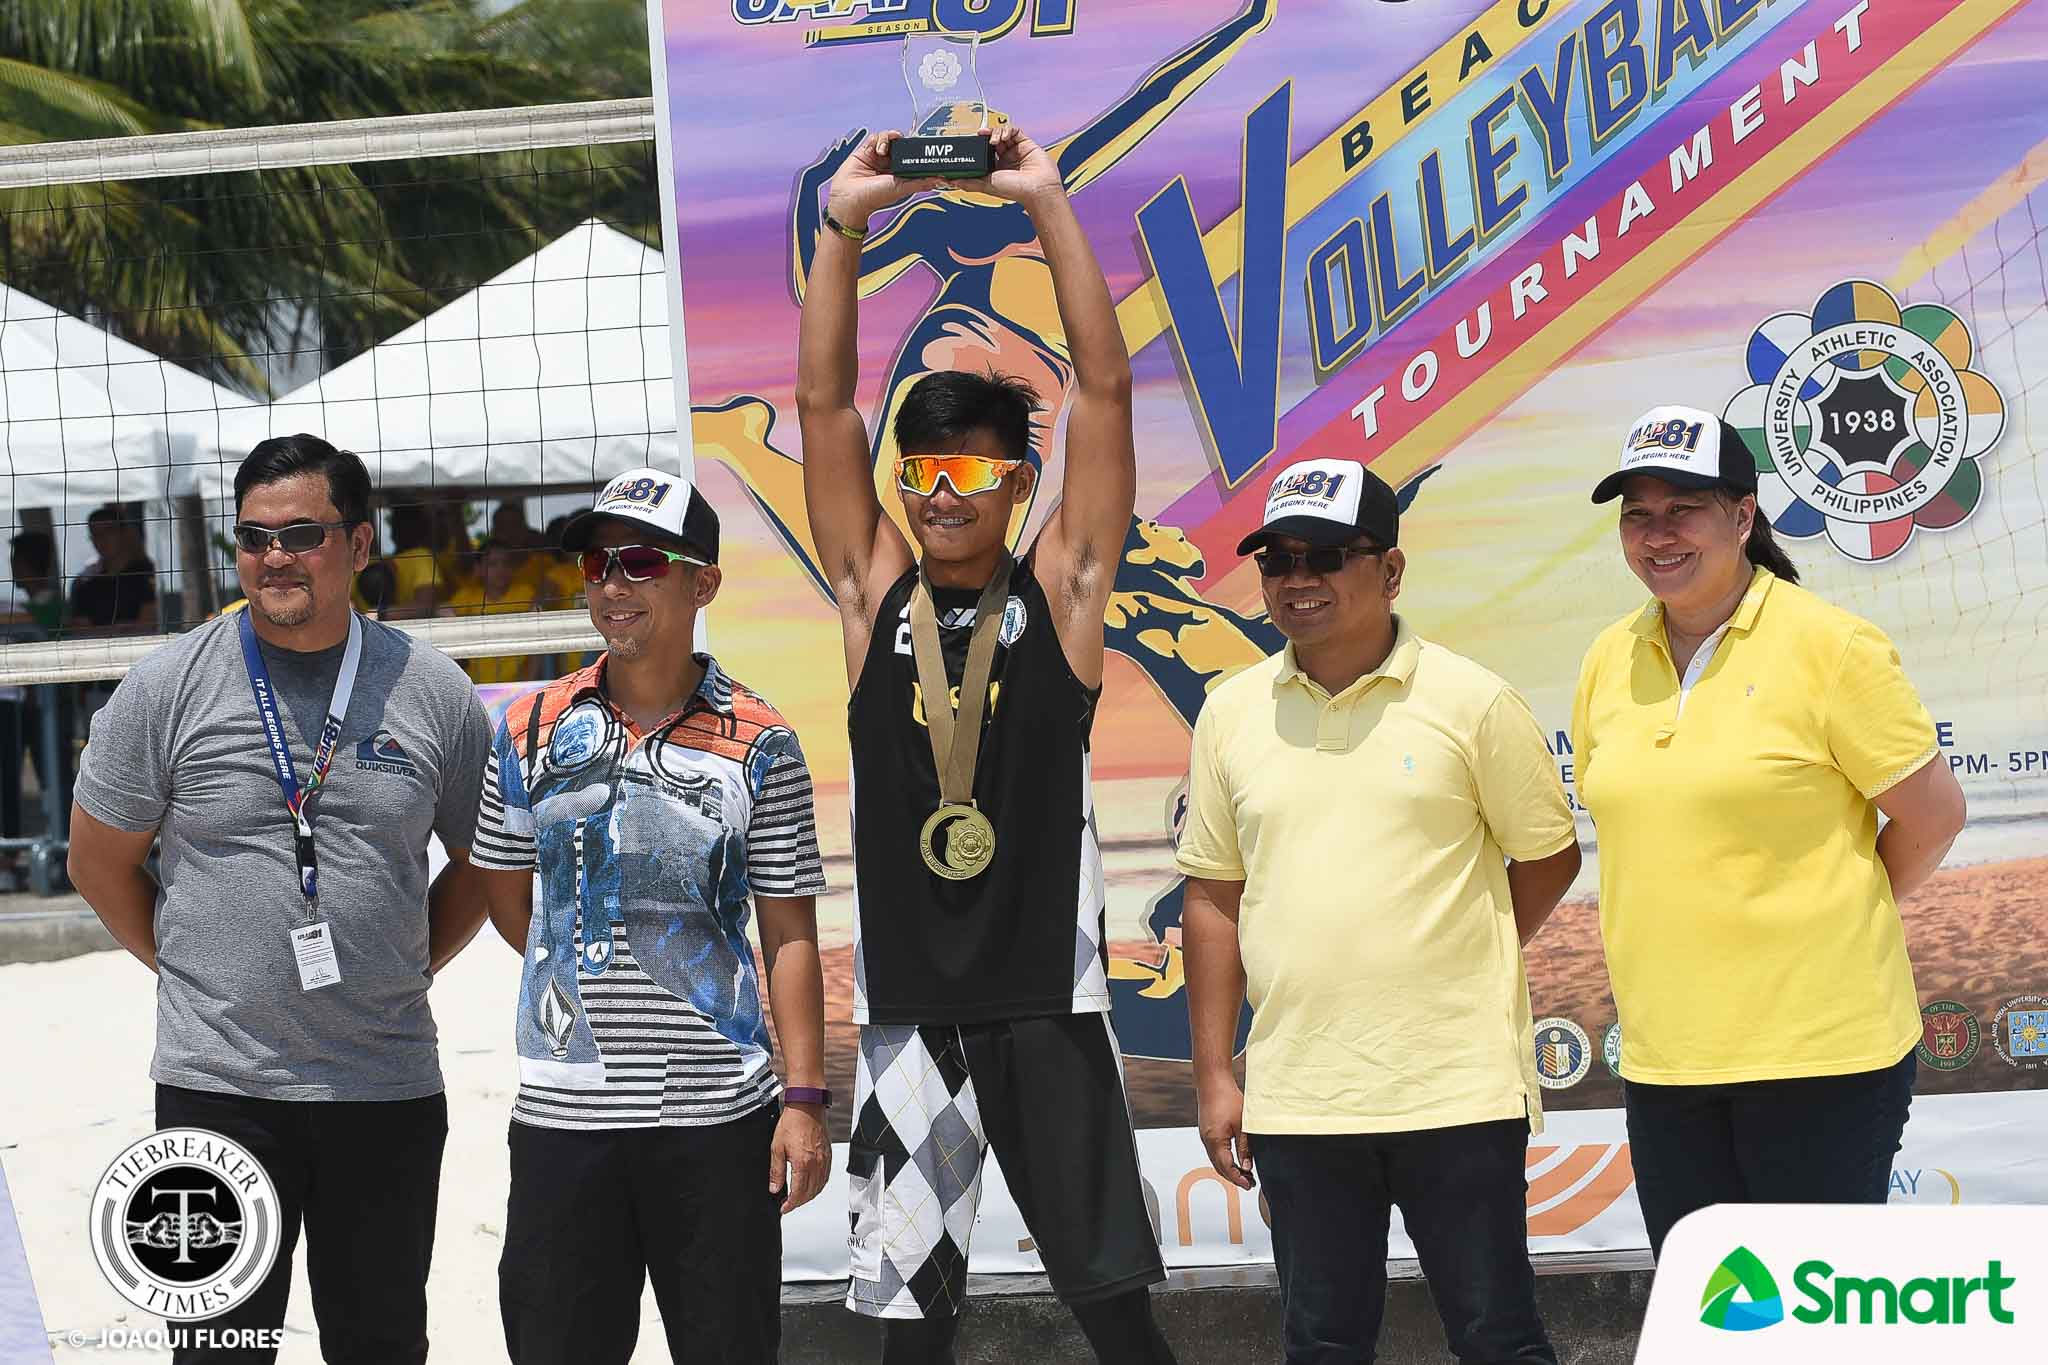 Tiebreaker Times Family Matters: The redemption of UST and Krung Arbasto Beach Volleyball News UAAP UST  UST Men's Volleyball UAAP Season 81 Men's Beach Volleyball UAAP Season 81 Jaron Requinton Anthony Arbasto